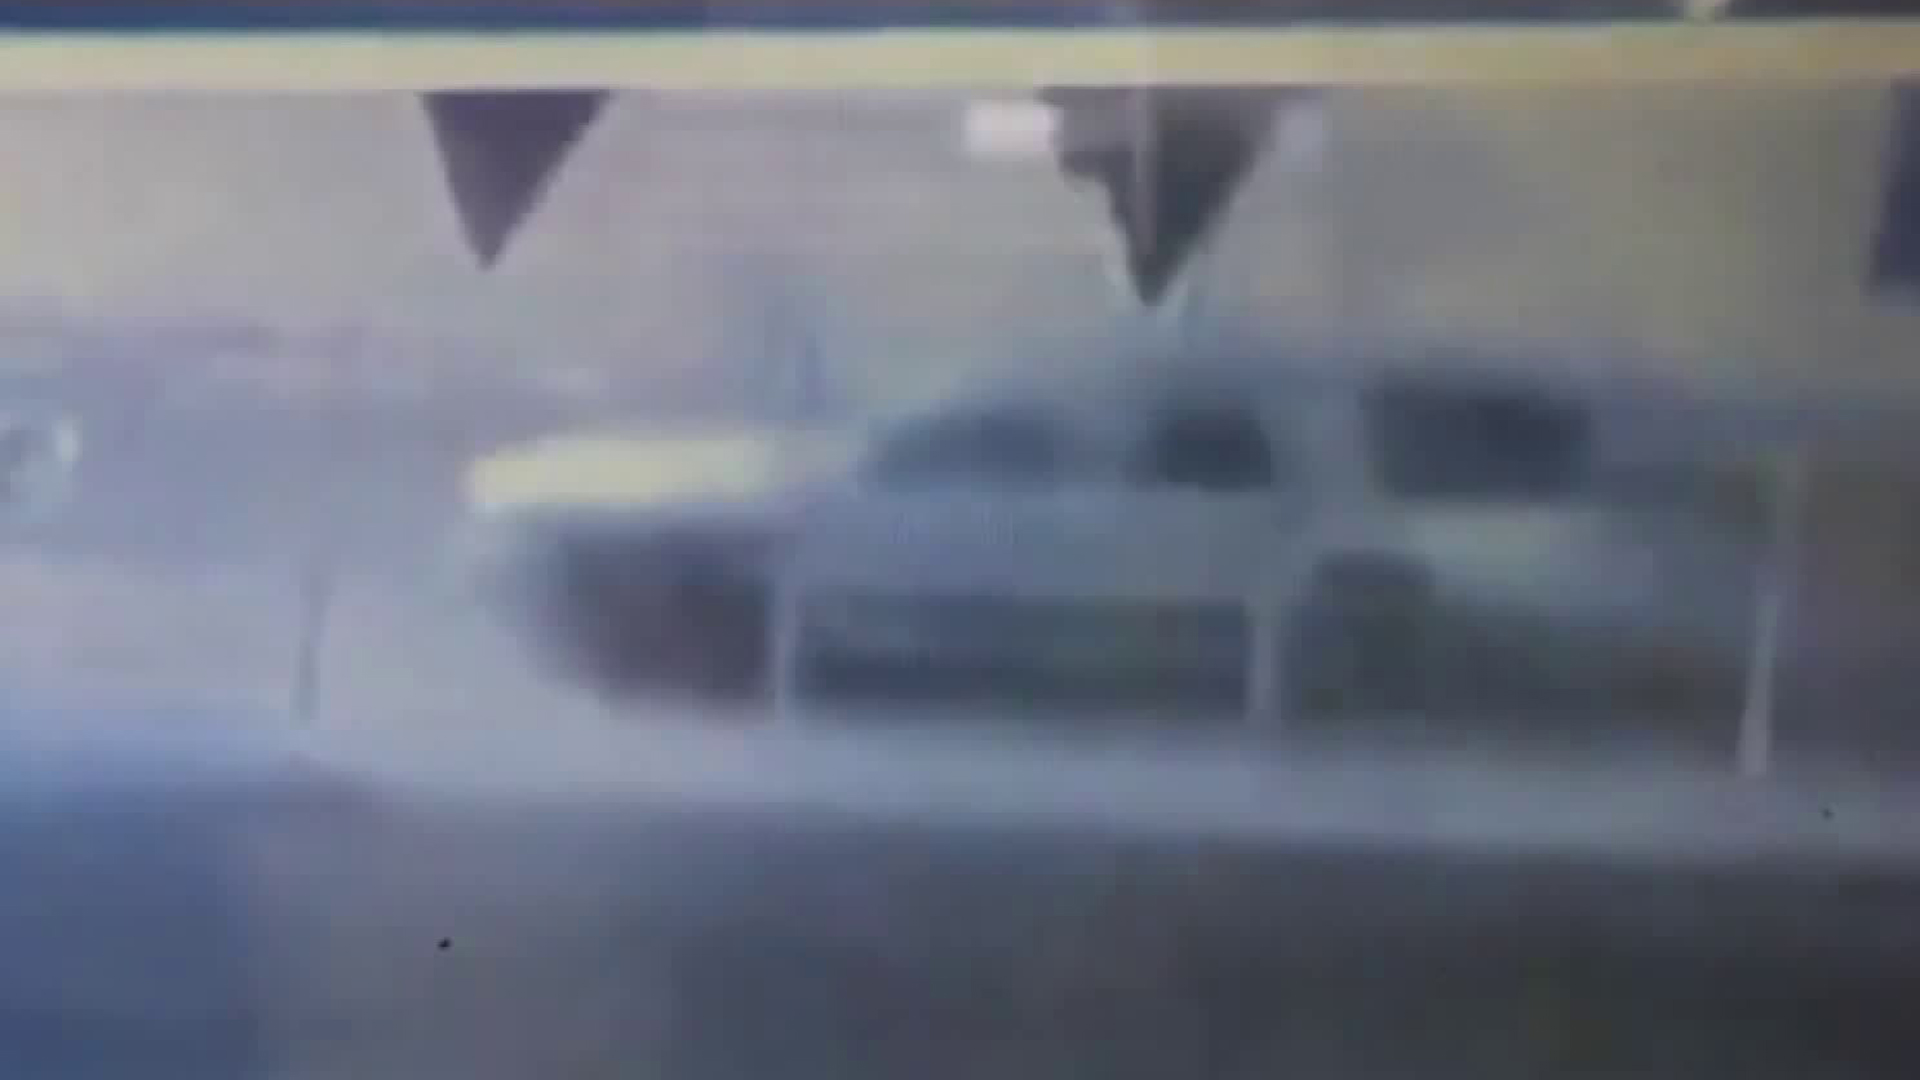 This still from surveillance video provided by LAPD on Oct. 28, 2018, shows a truck believed to have been involved in a hit-and-run in downtown L.A. that left two men in critical condition the night before.